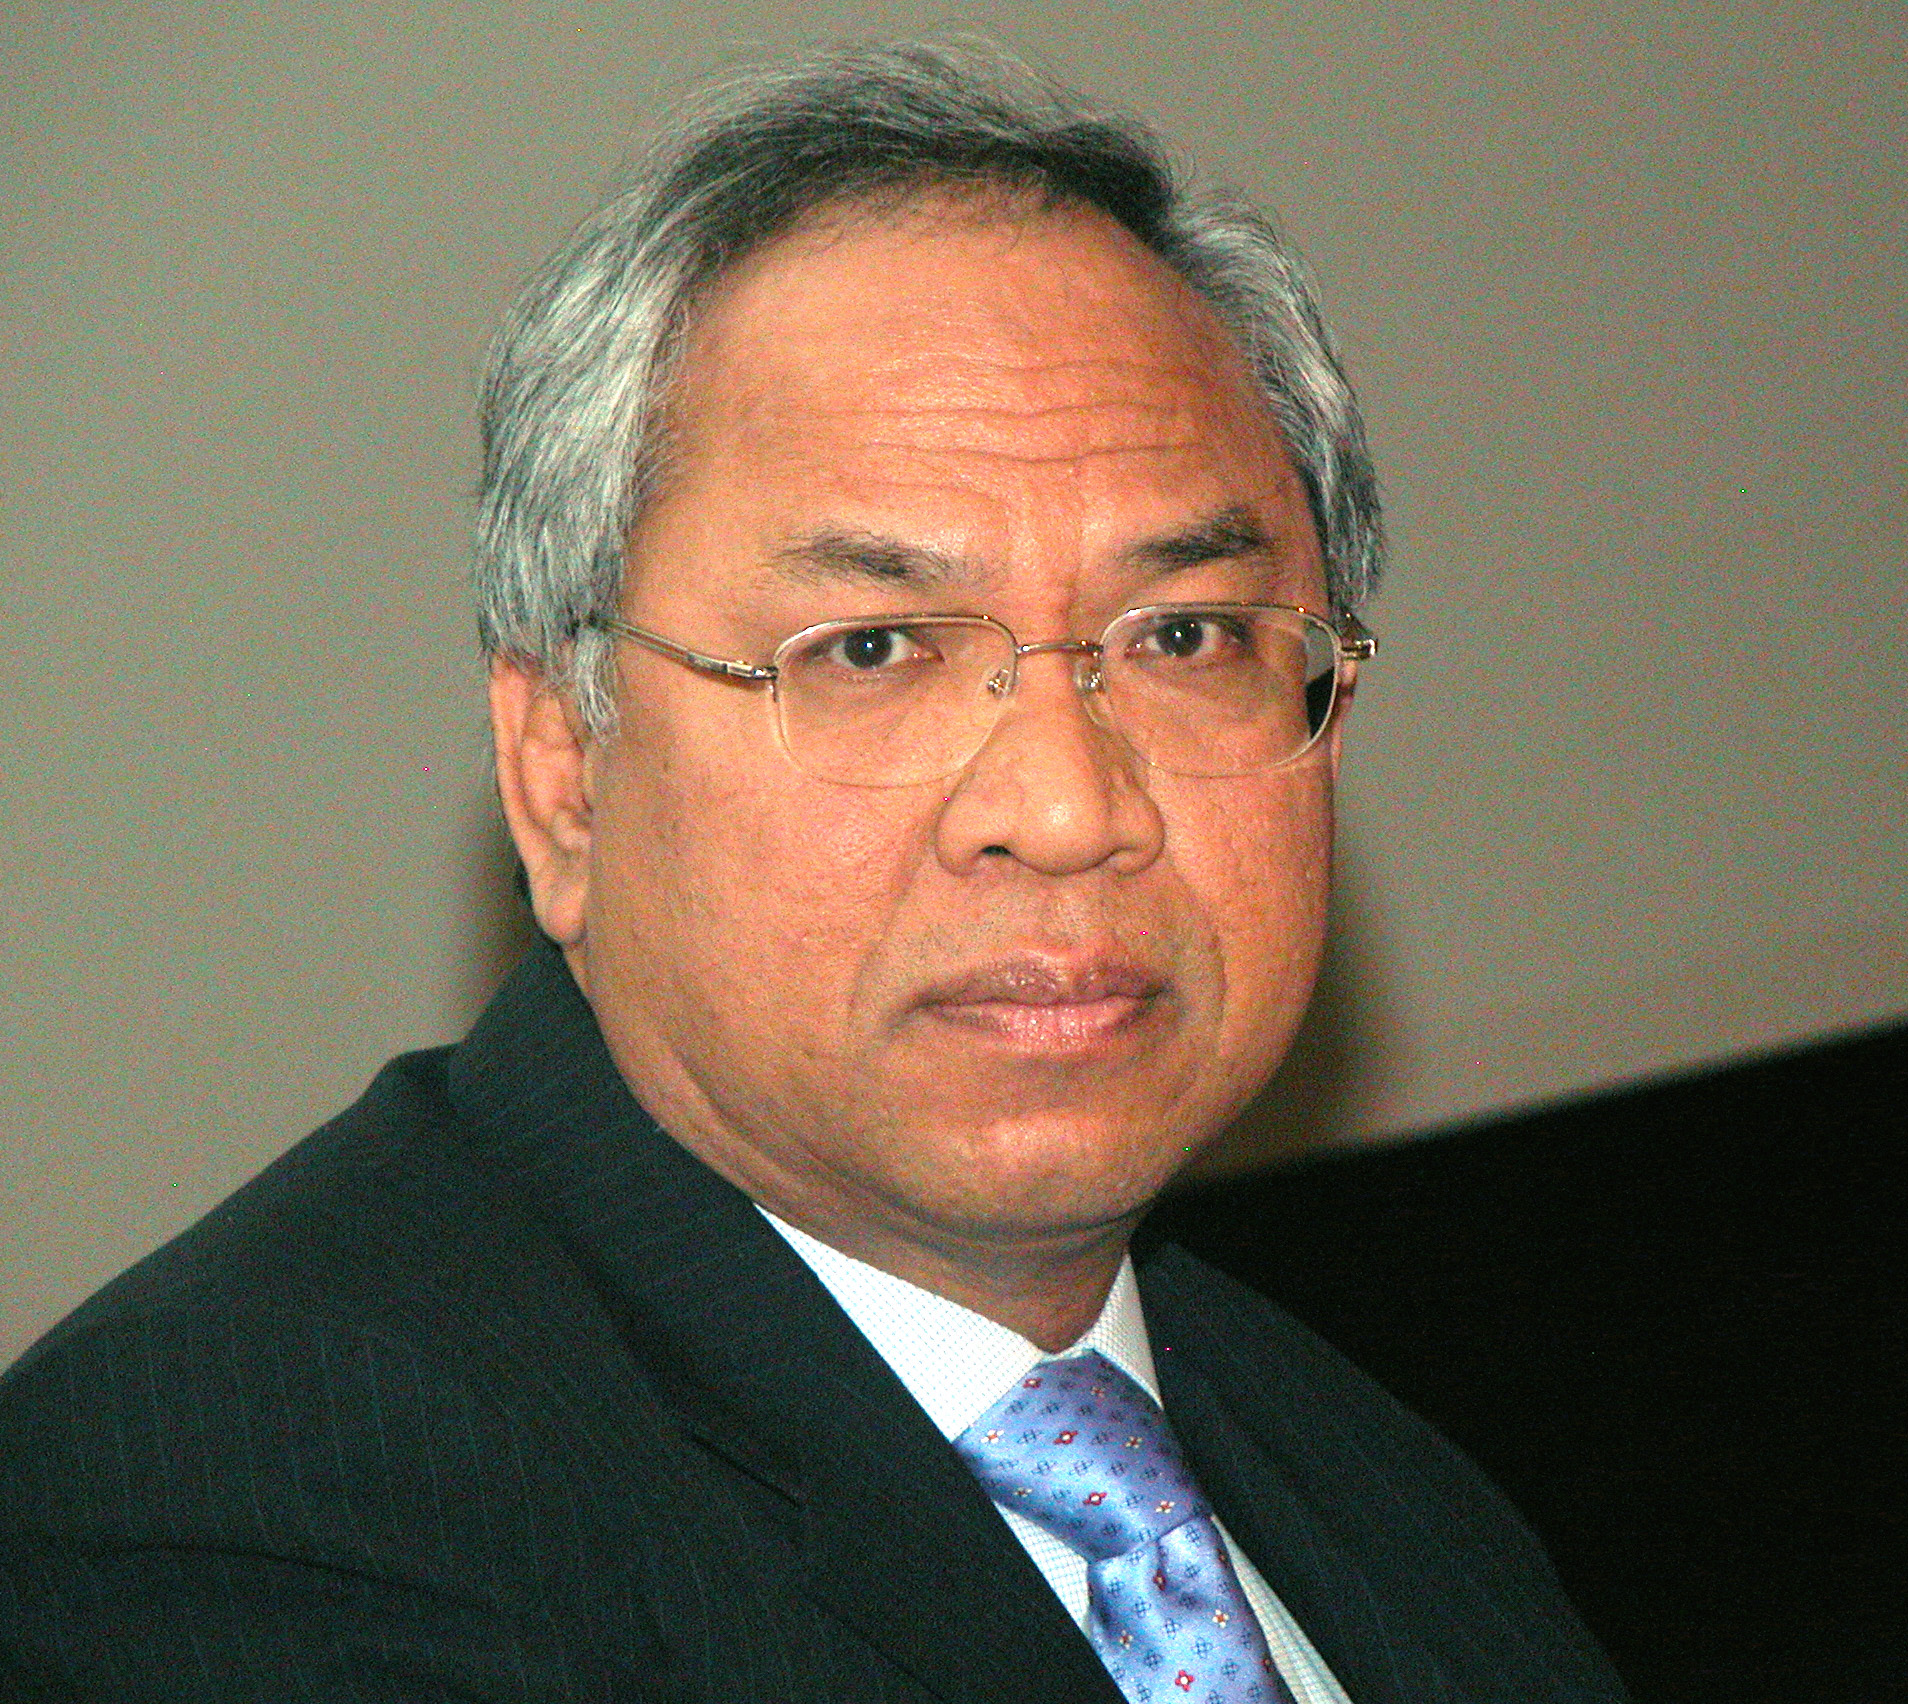 Datuk Suboh Mohd Yassin, one of the directors of SRC International Sdn. Bhd. - 2f4f